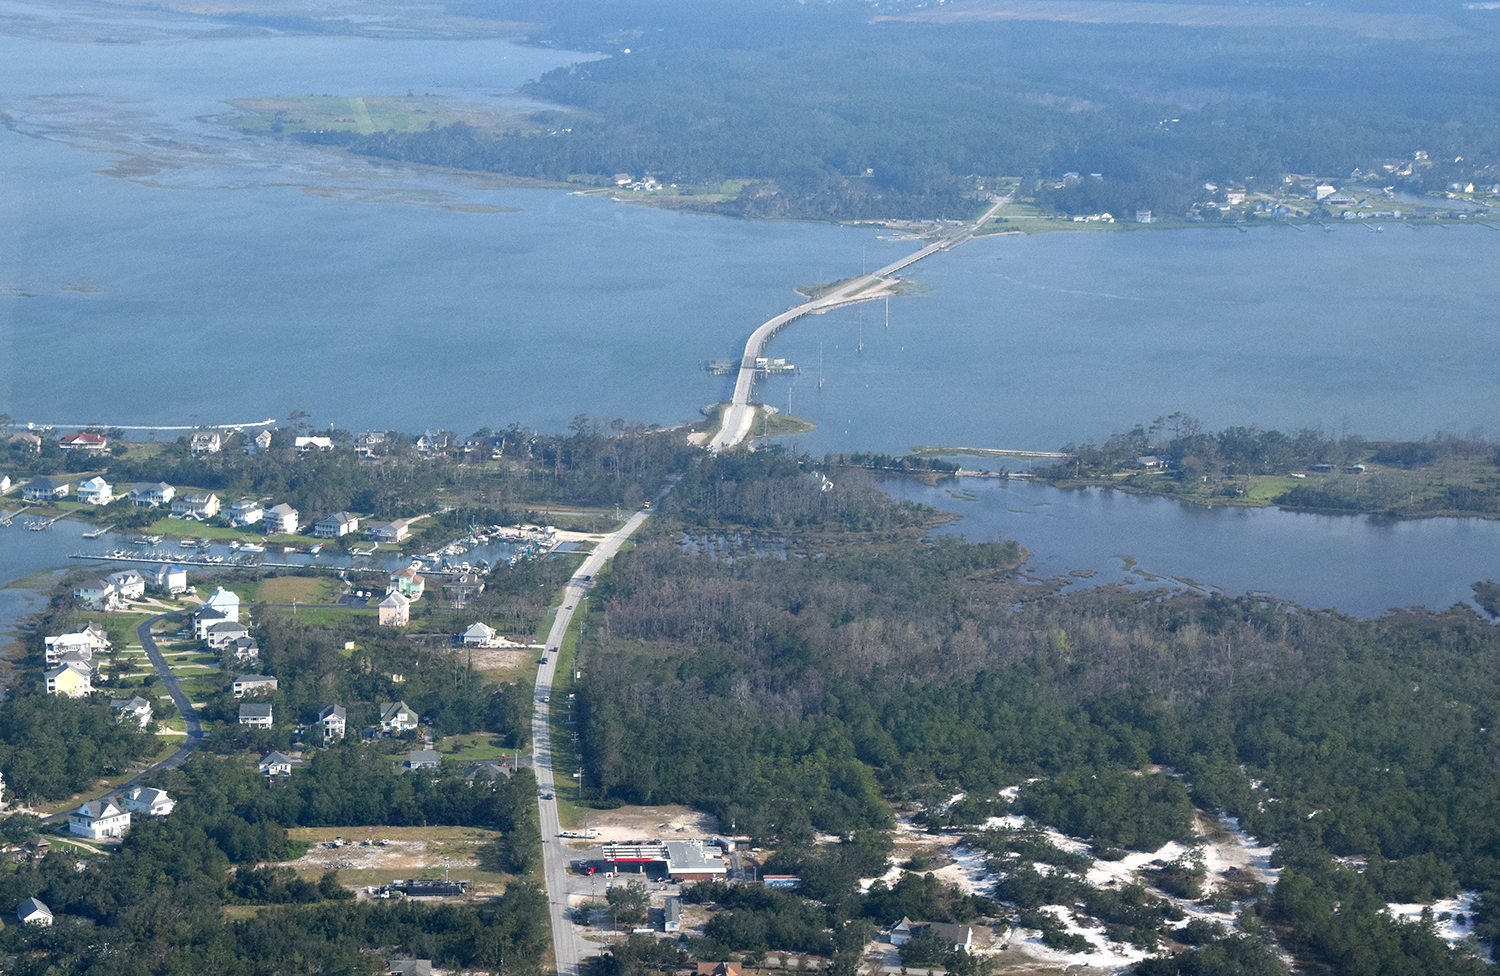 The North Carolina Department of Transportation has awarded contracts to replace the swing-span Earl C. Davis Memorial Bridge and Bridge No. 96, both of which connect the Straits township shown at top to Harkers Island. Photo: Mark Hibbs